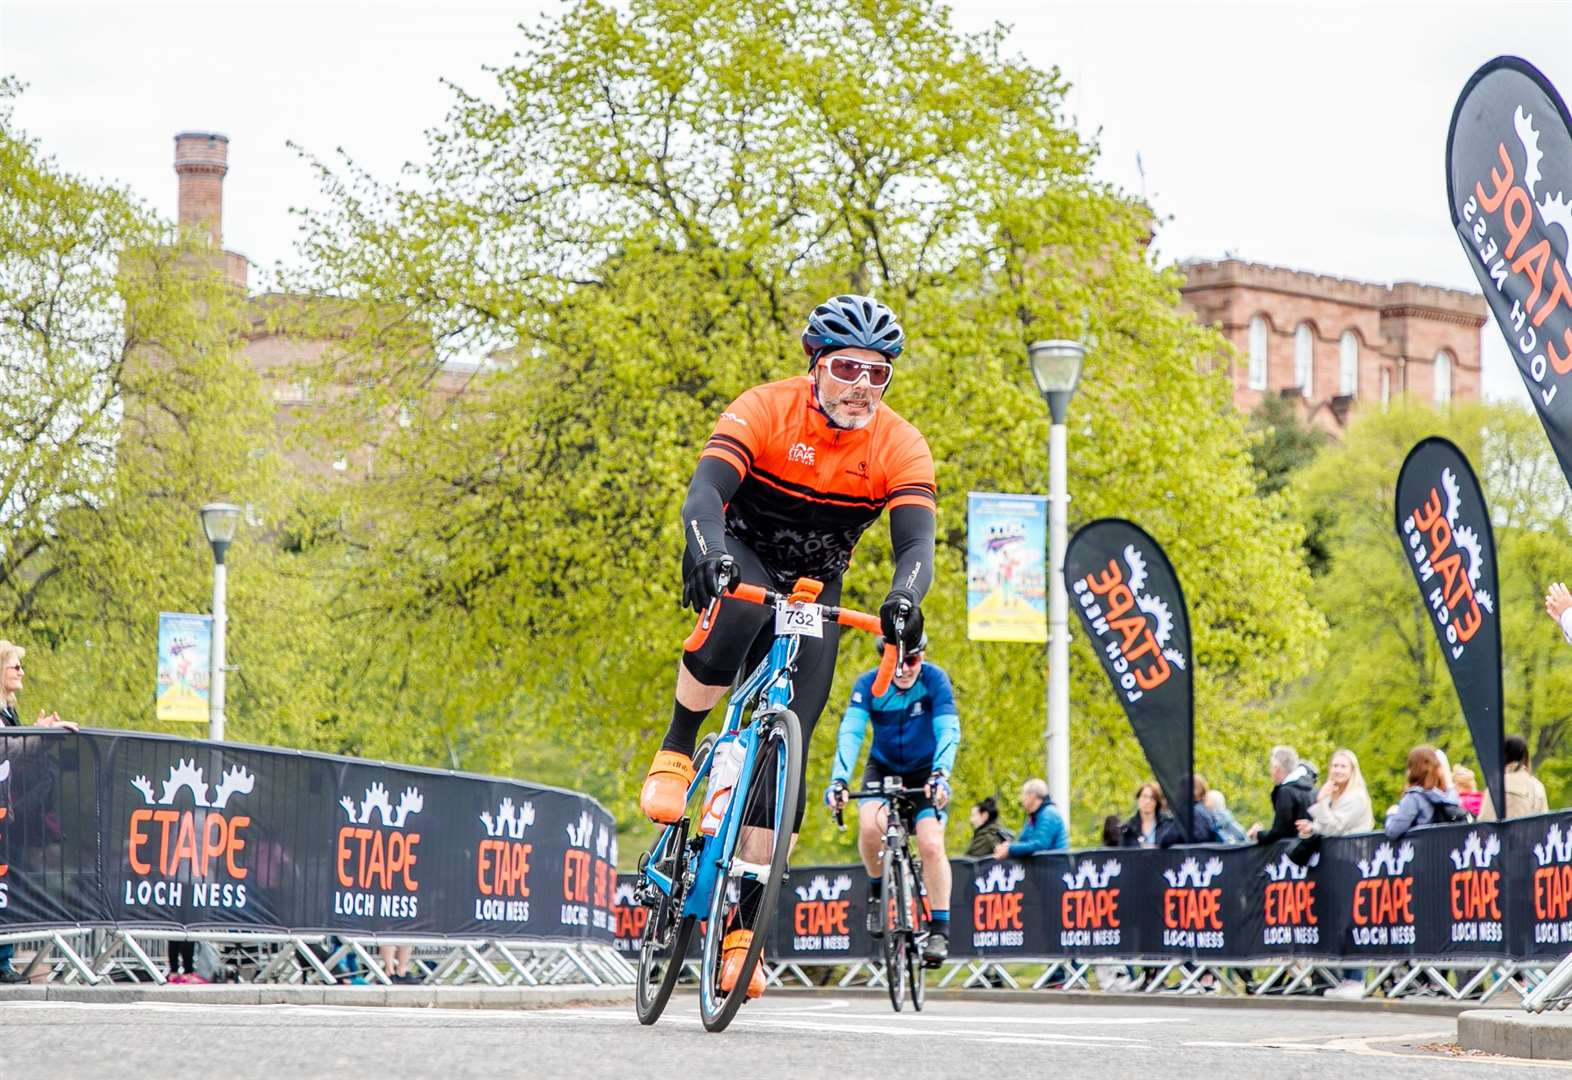 Thousands turn out to conquer Etape Loch Ness cycle challenge